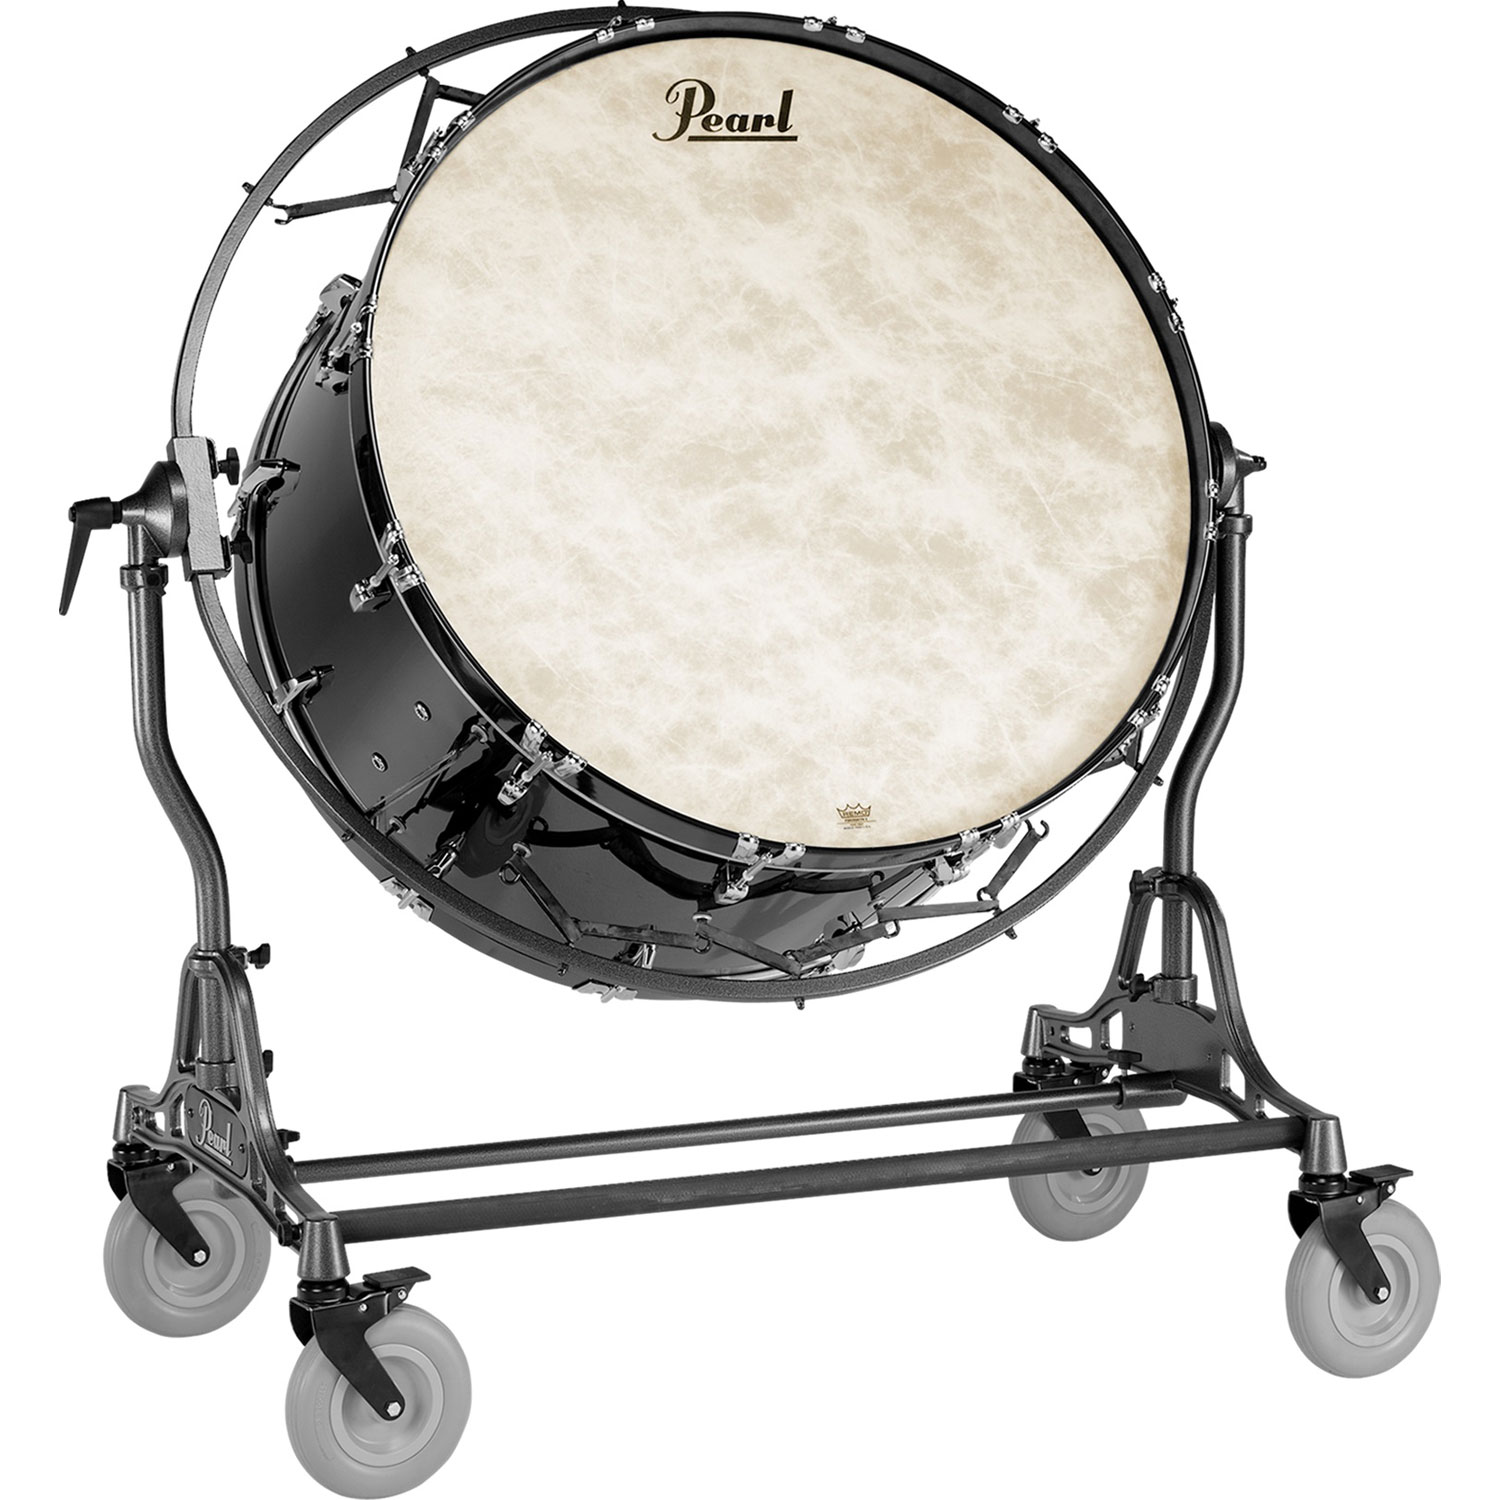 "Pearl 32"" (Diameter) x 16"" (Deep) Concert Series Kapur Concert Bass Drum with STBD Stand"